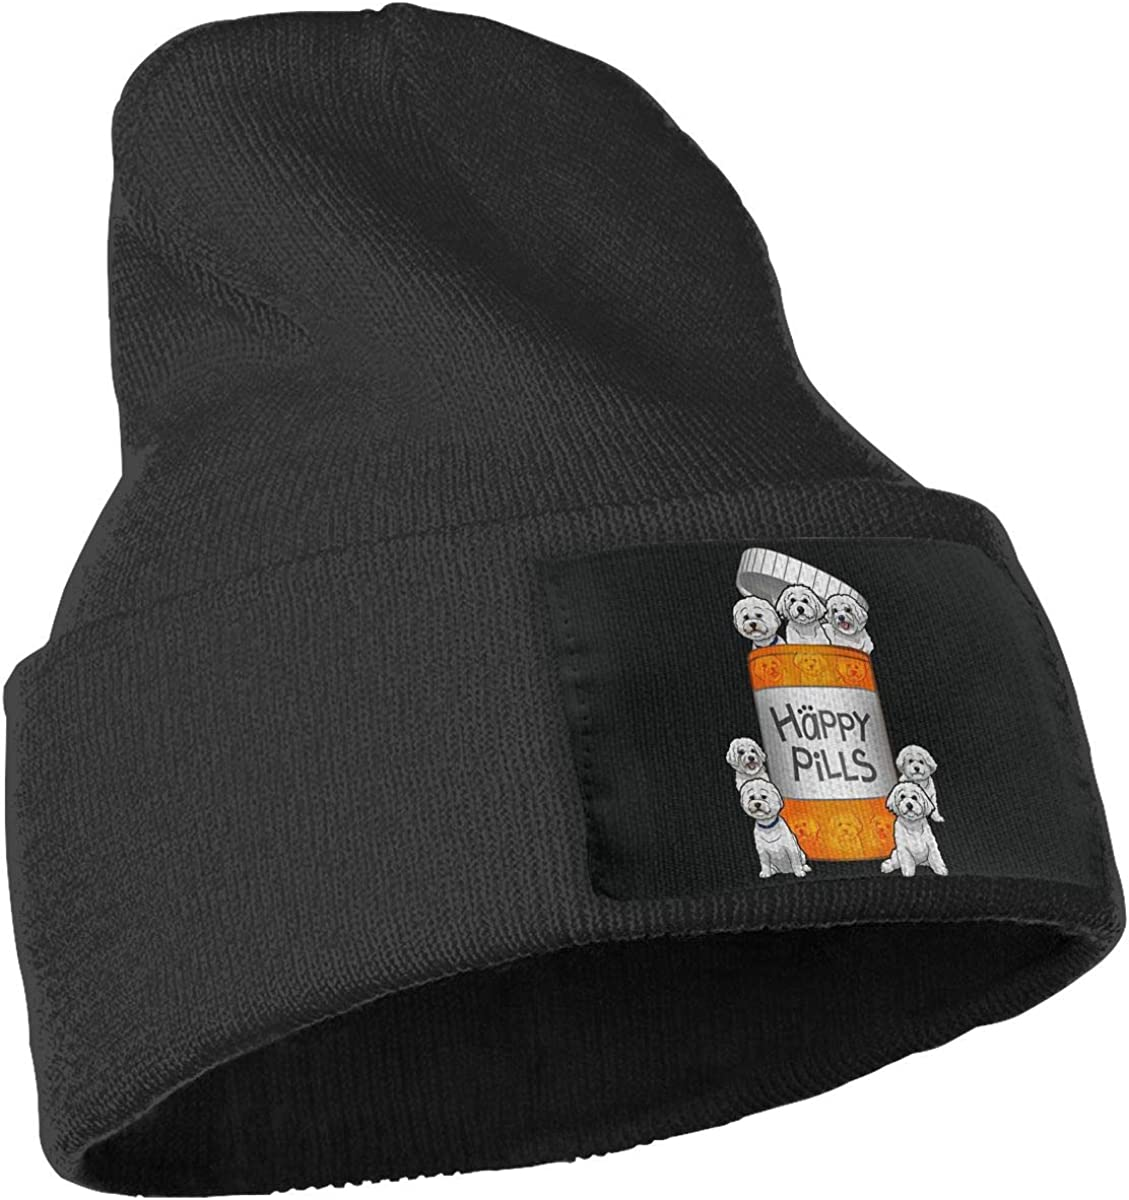 SLADDD1 Happy Pills Warm Winter Hat Knit Beanie Skull Cap Cuff Beanie Hat Winter Hats for Men /& Women